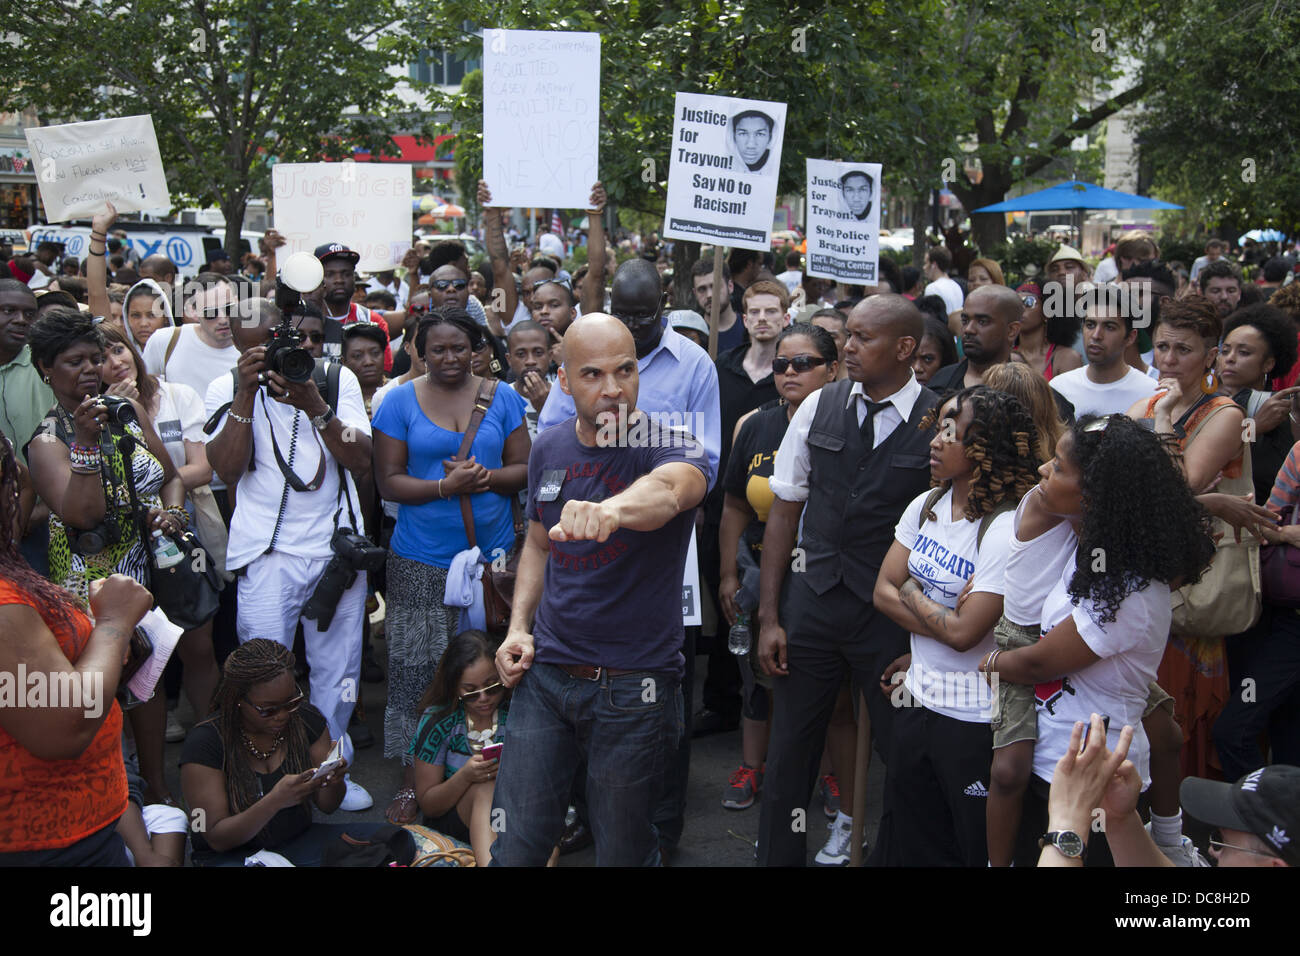 Demonstration and march against institutional racism in America after the verdict came down at the Trayvon Martin - Stock Image